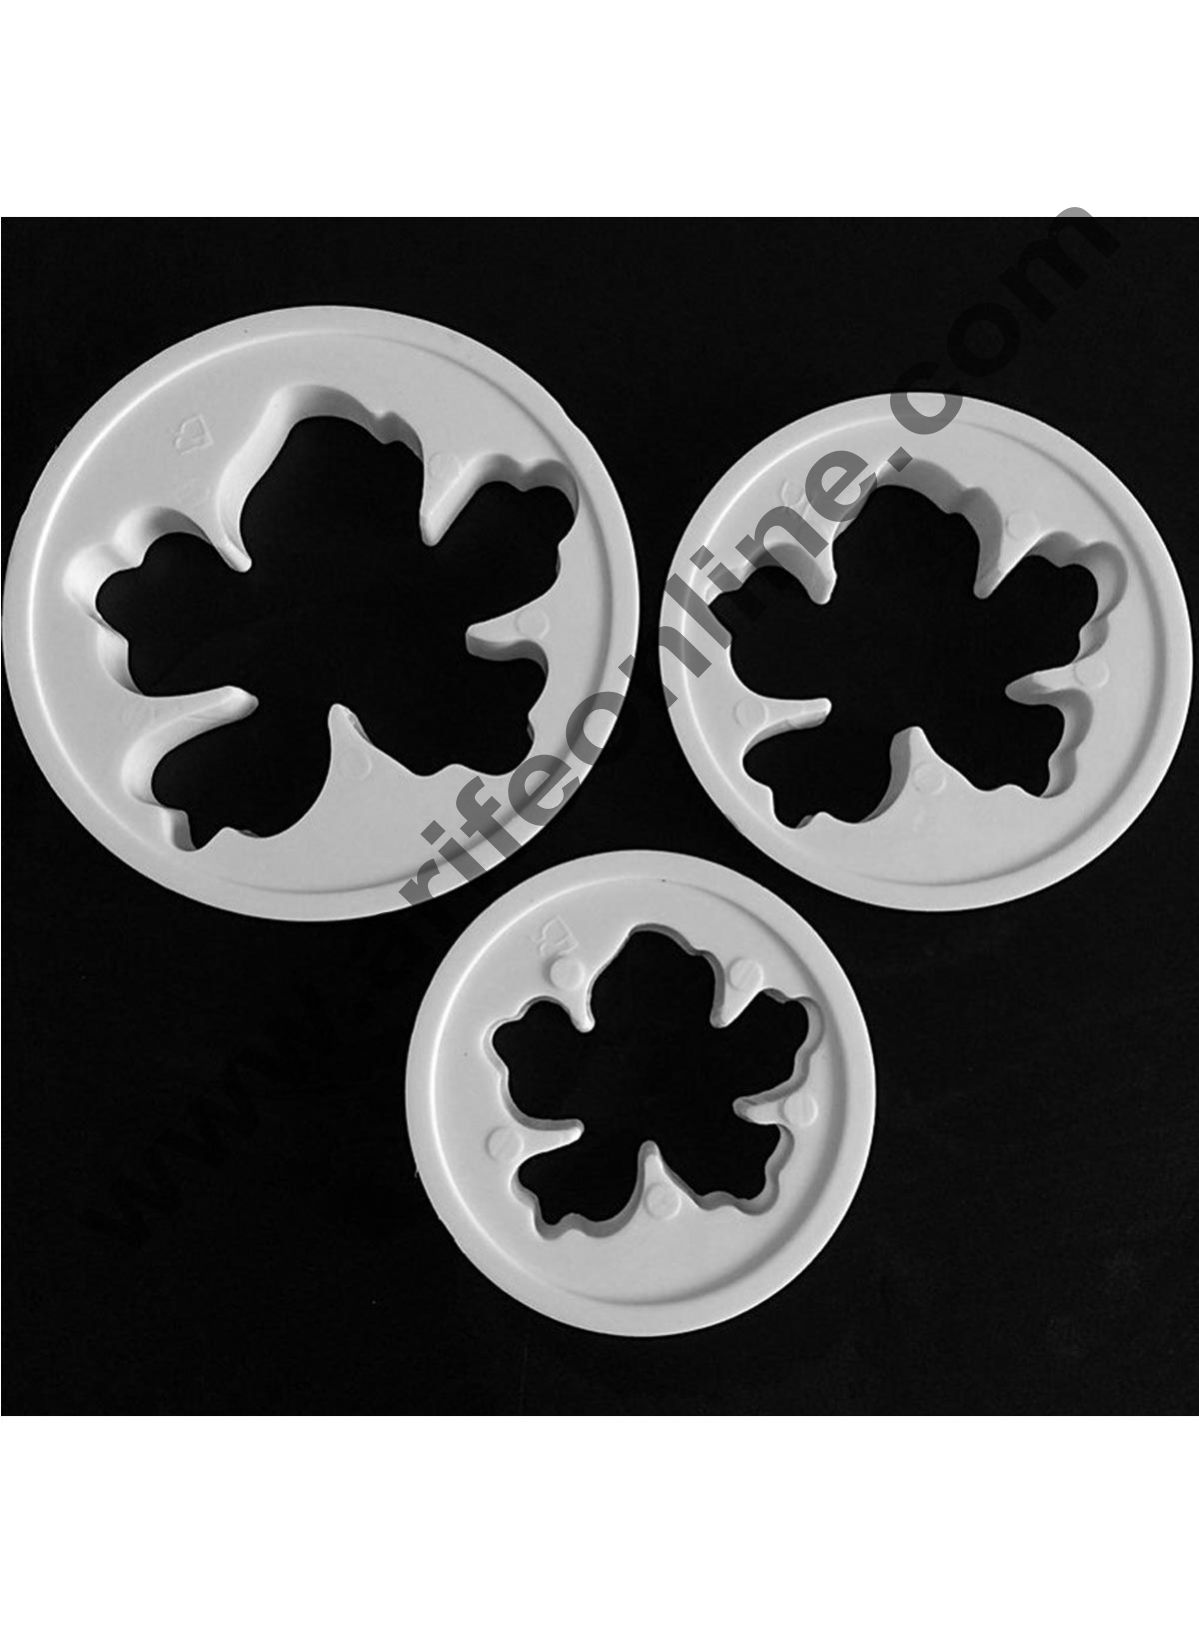 Cake Decor 3 Piece Hawaiian Flowers Fondant Cake Decorating Plunger Cookie Cutter Mold